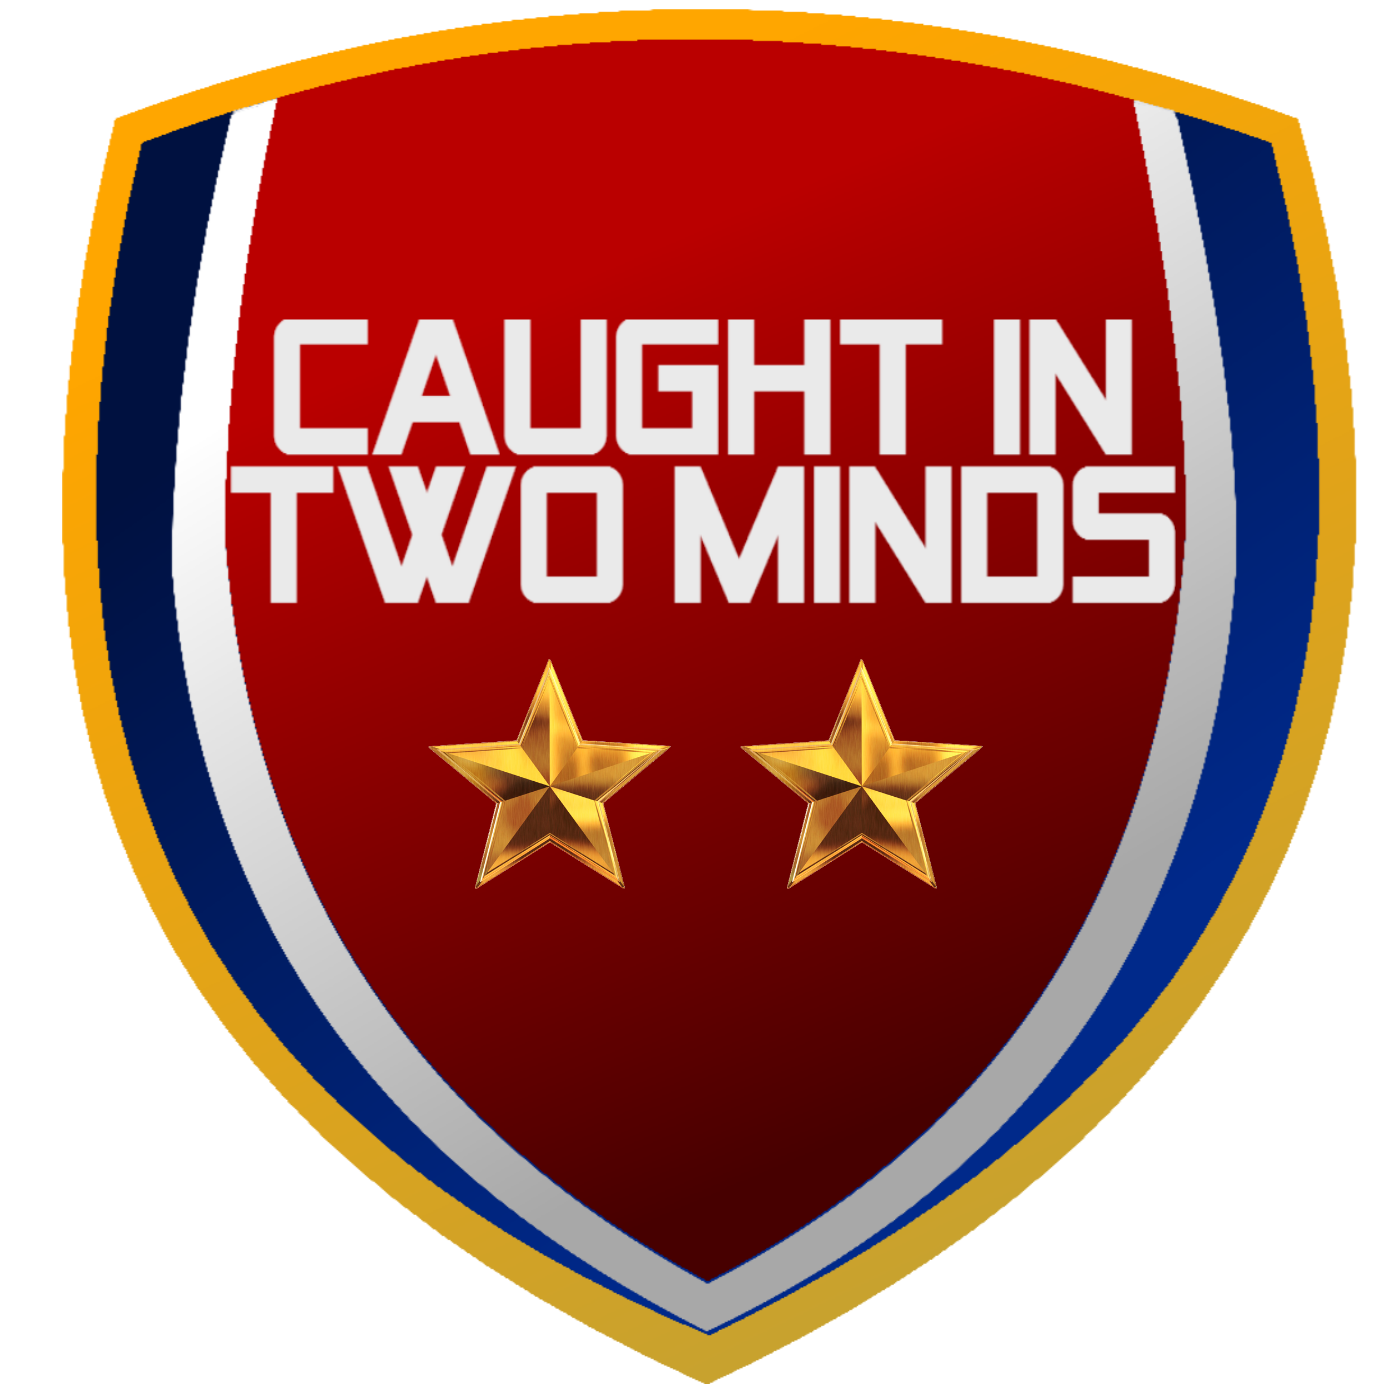 10 - Caught In Two Minds